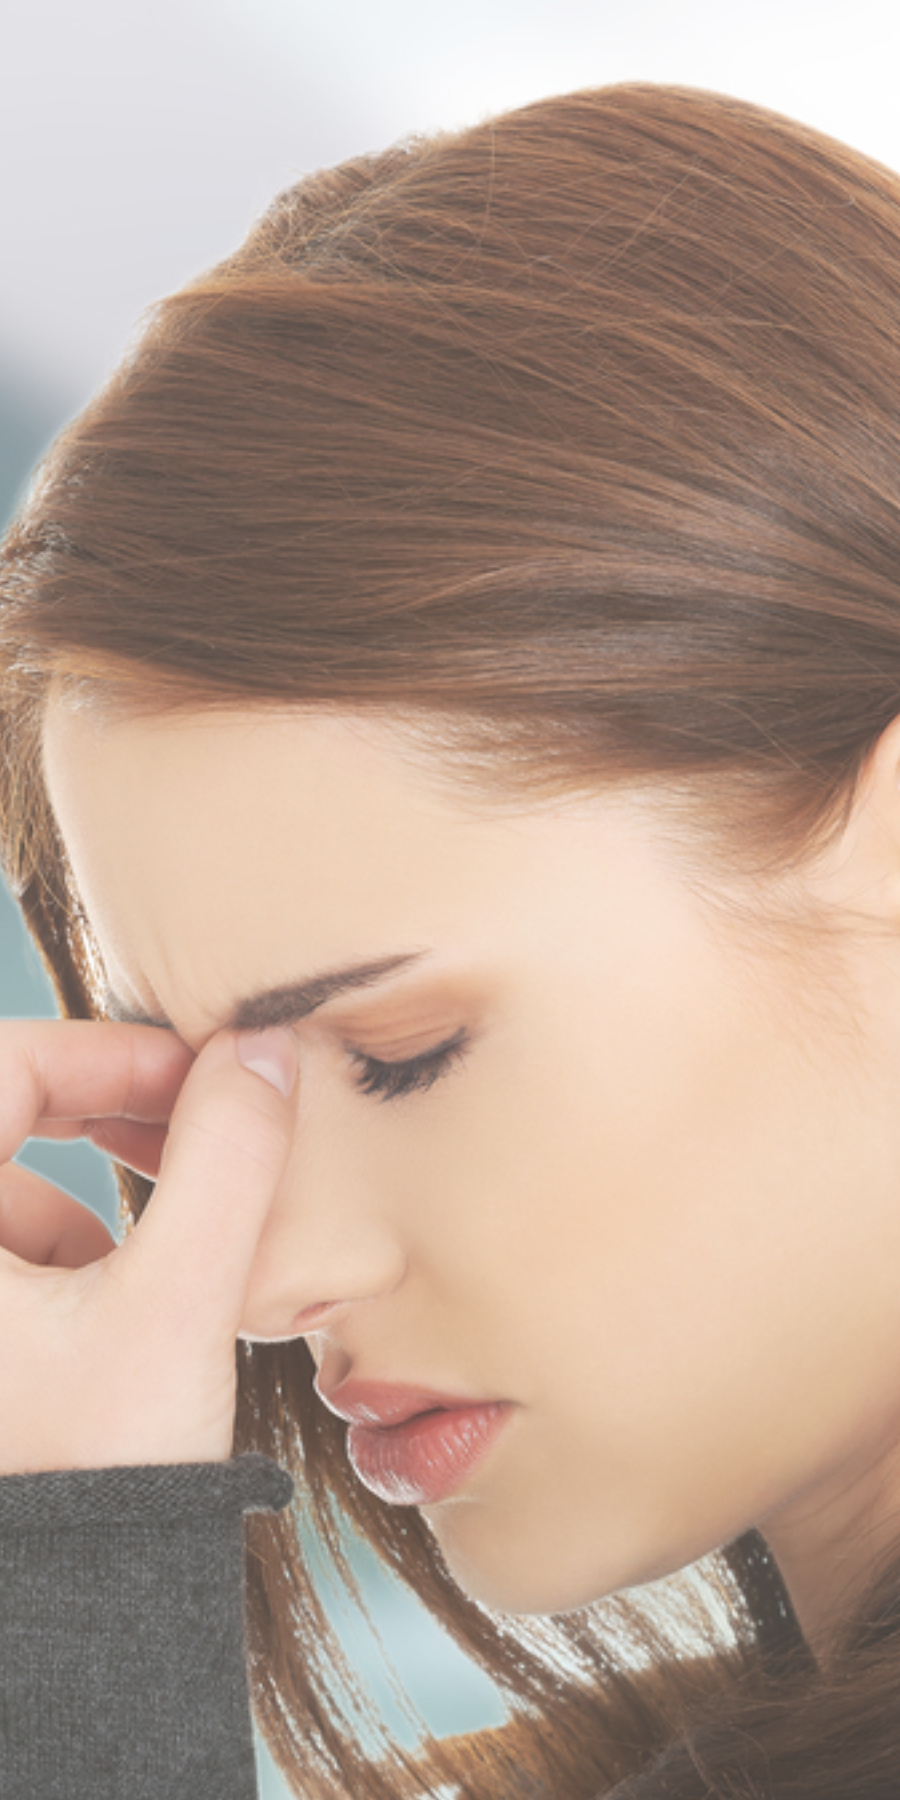 woman sinusitis Product Review - Sinulex Forte